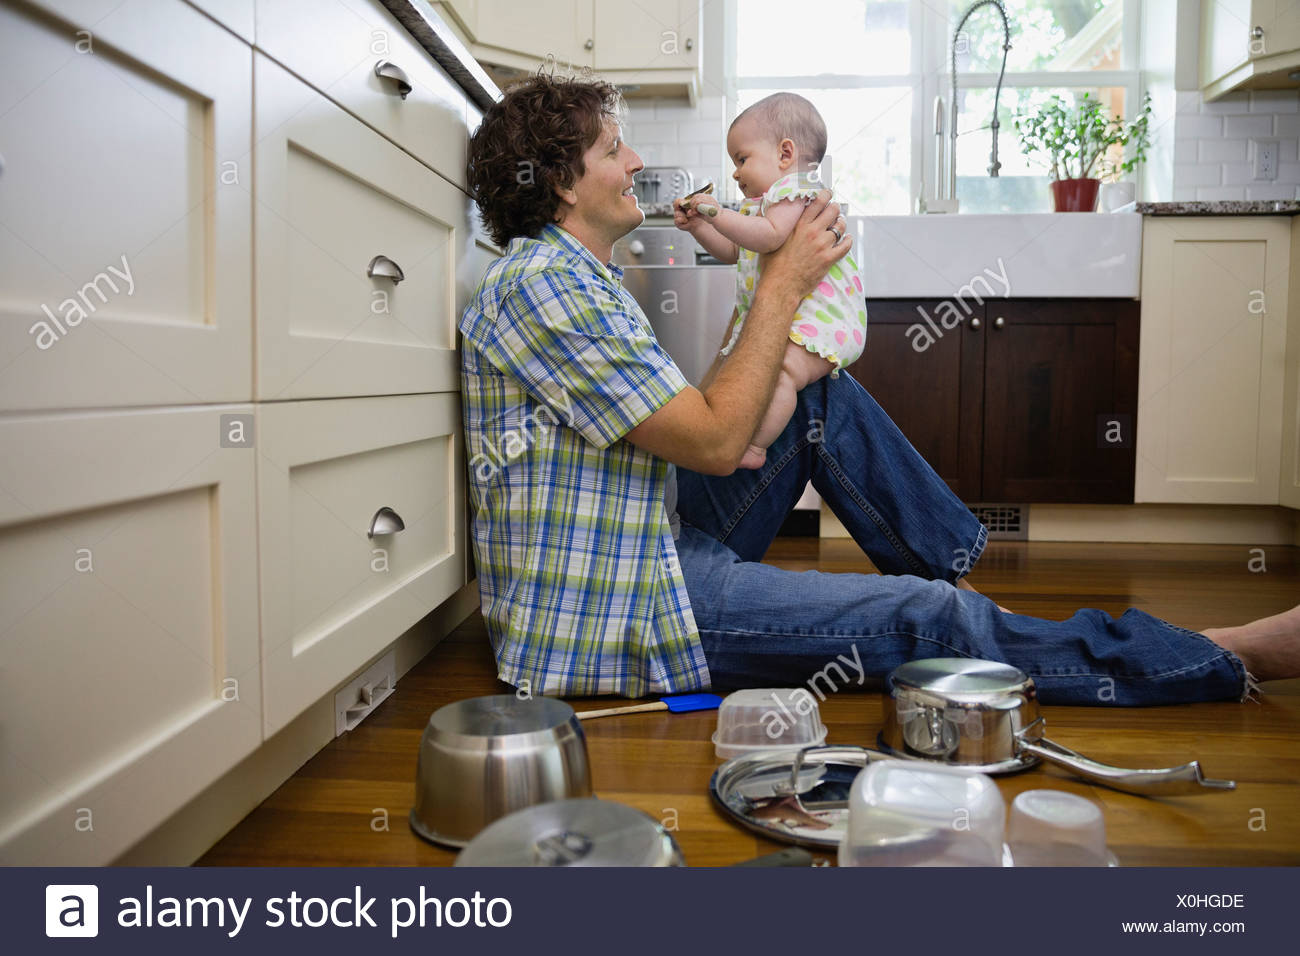 Profile shot of father and baby girl in kitchen - Stock Image